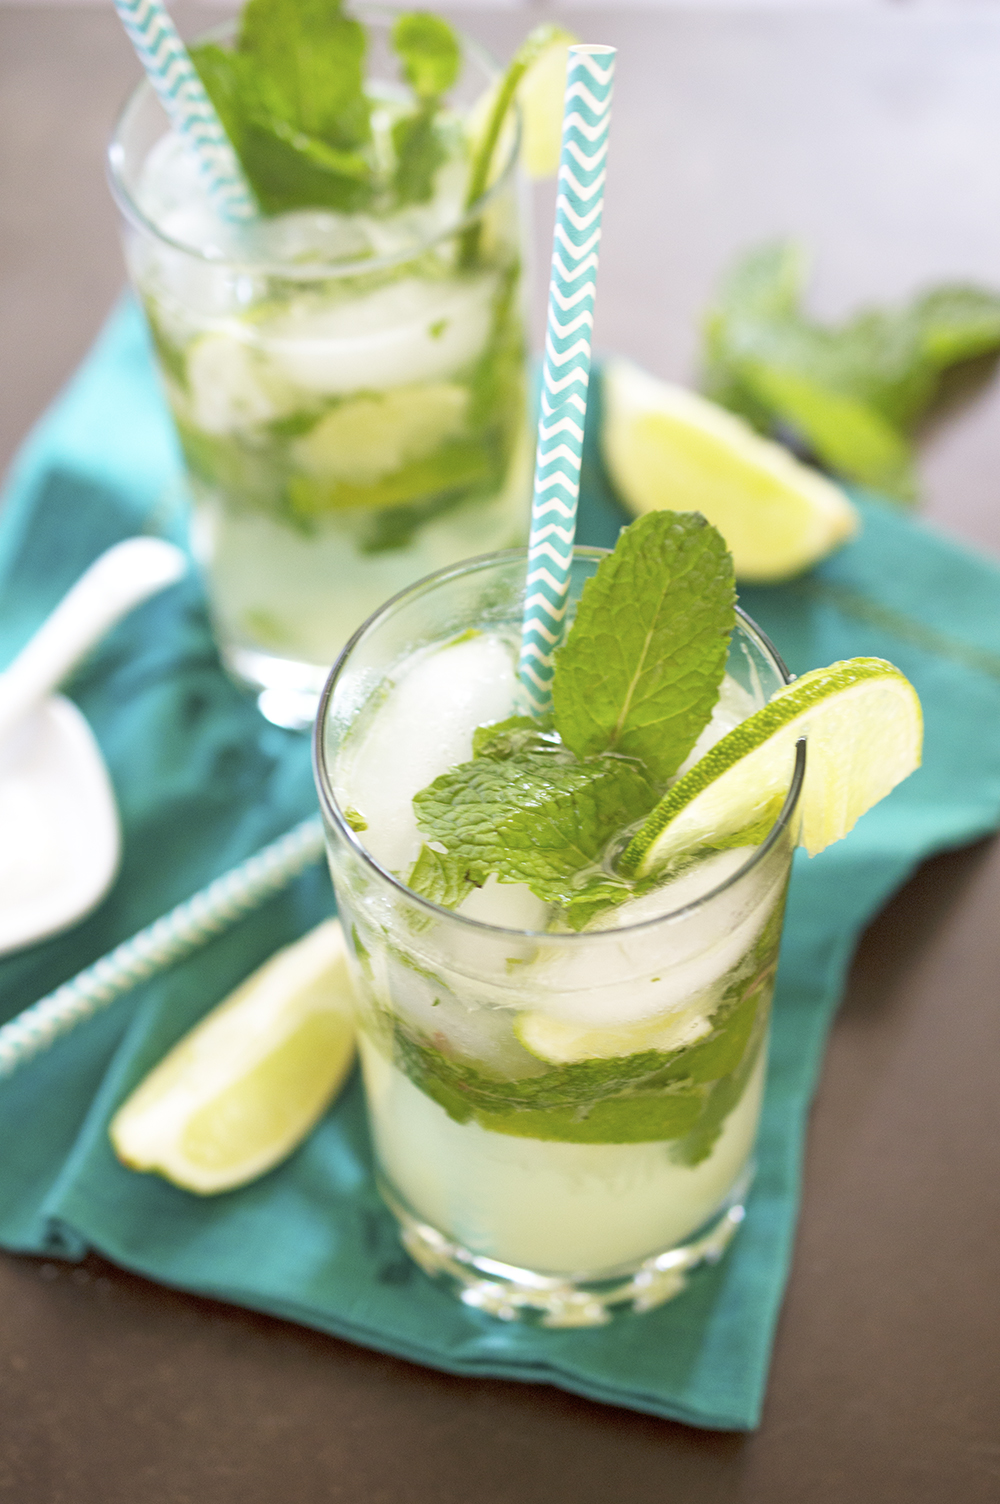 Cocktails with mint: simple recipes